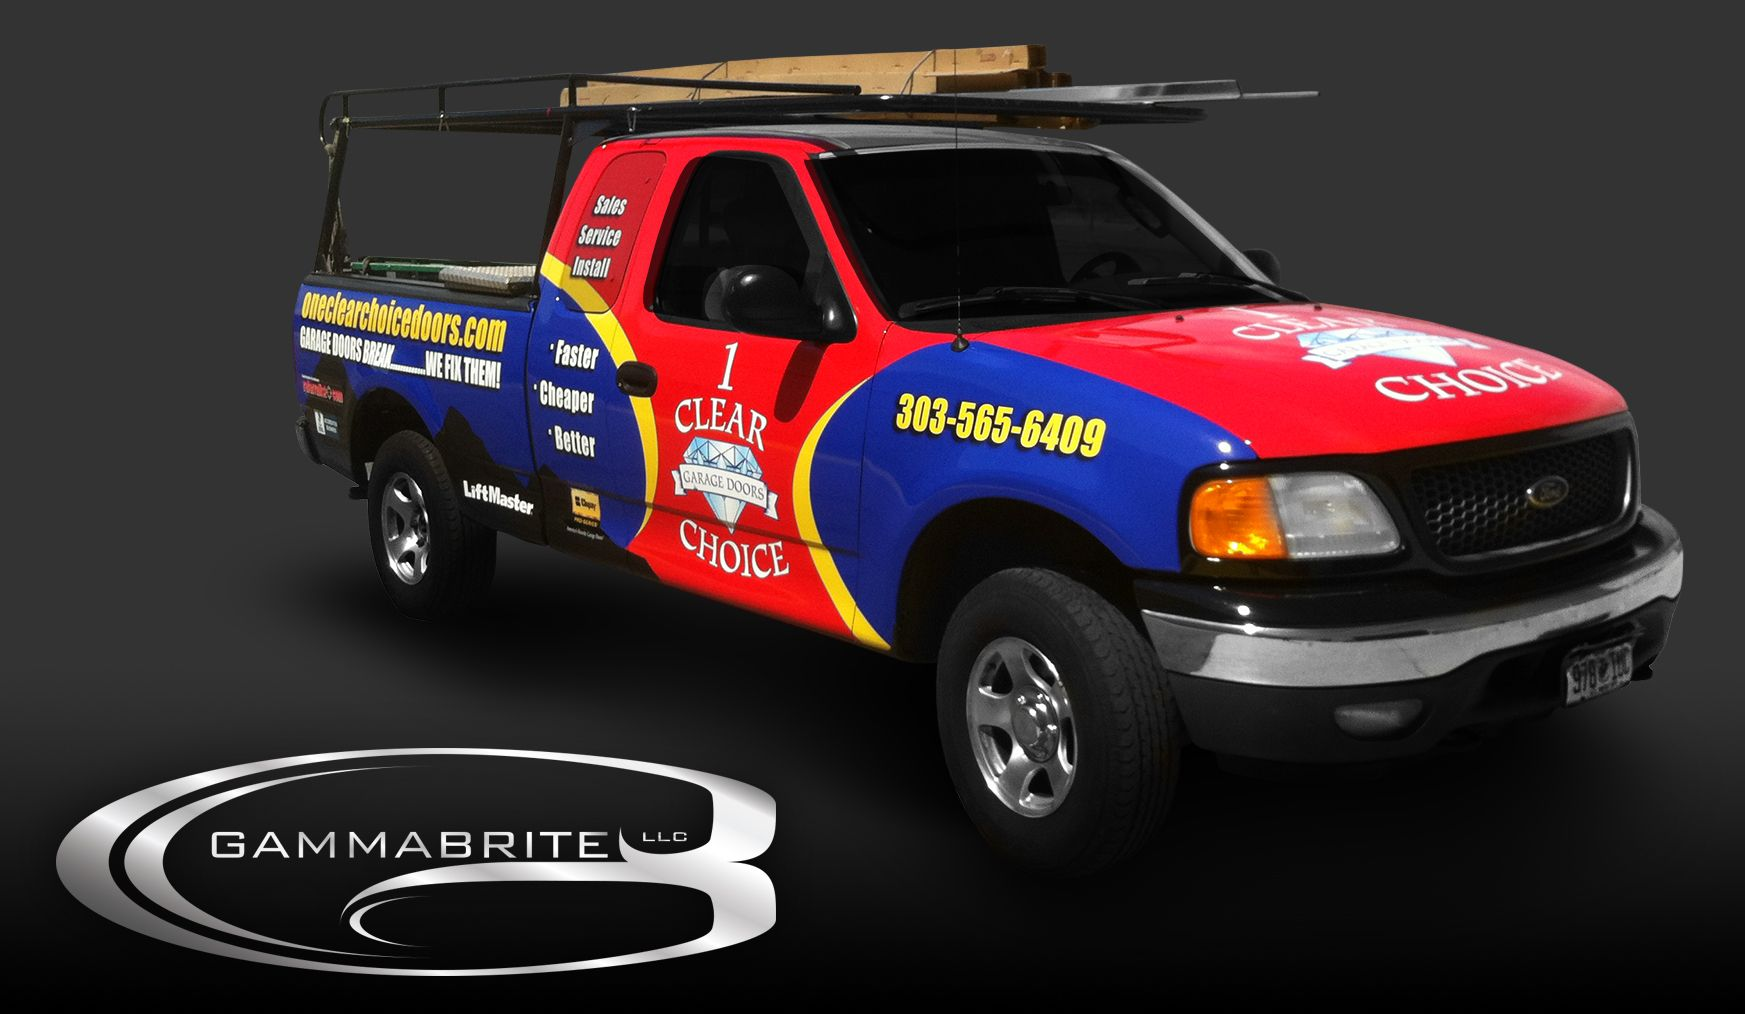 One clear choice garage doors vehicle wrap by gammabrite for Garage wraps